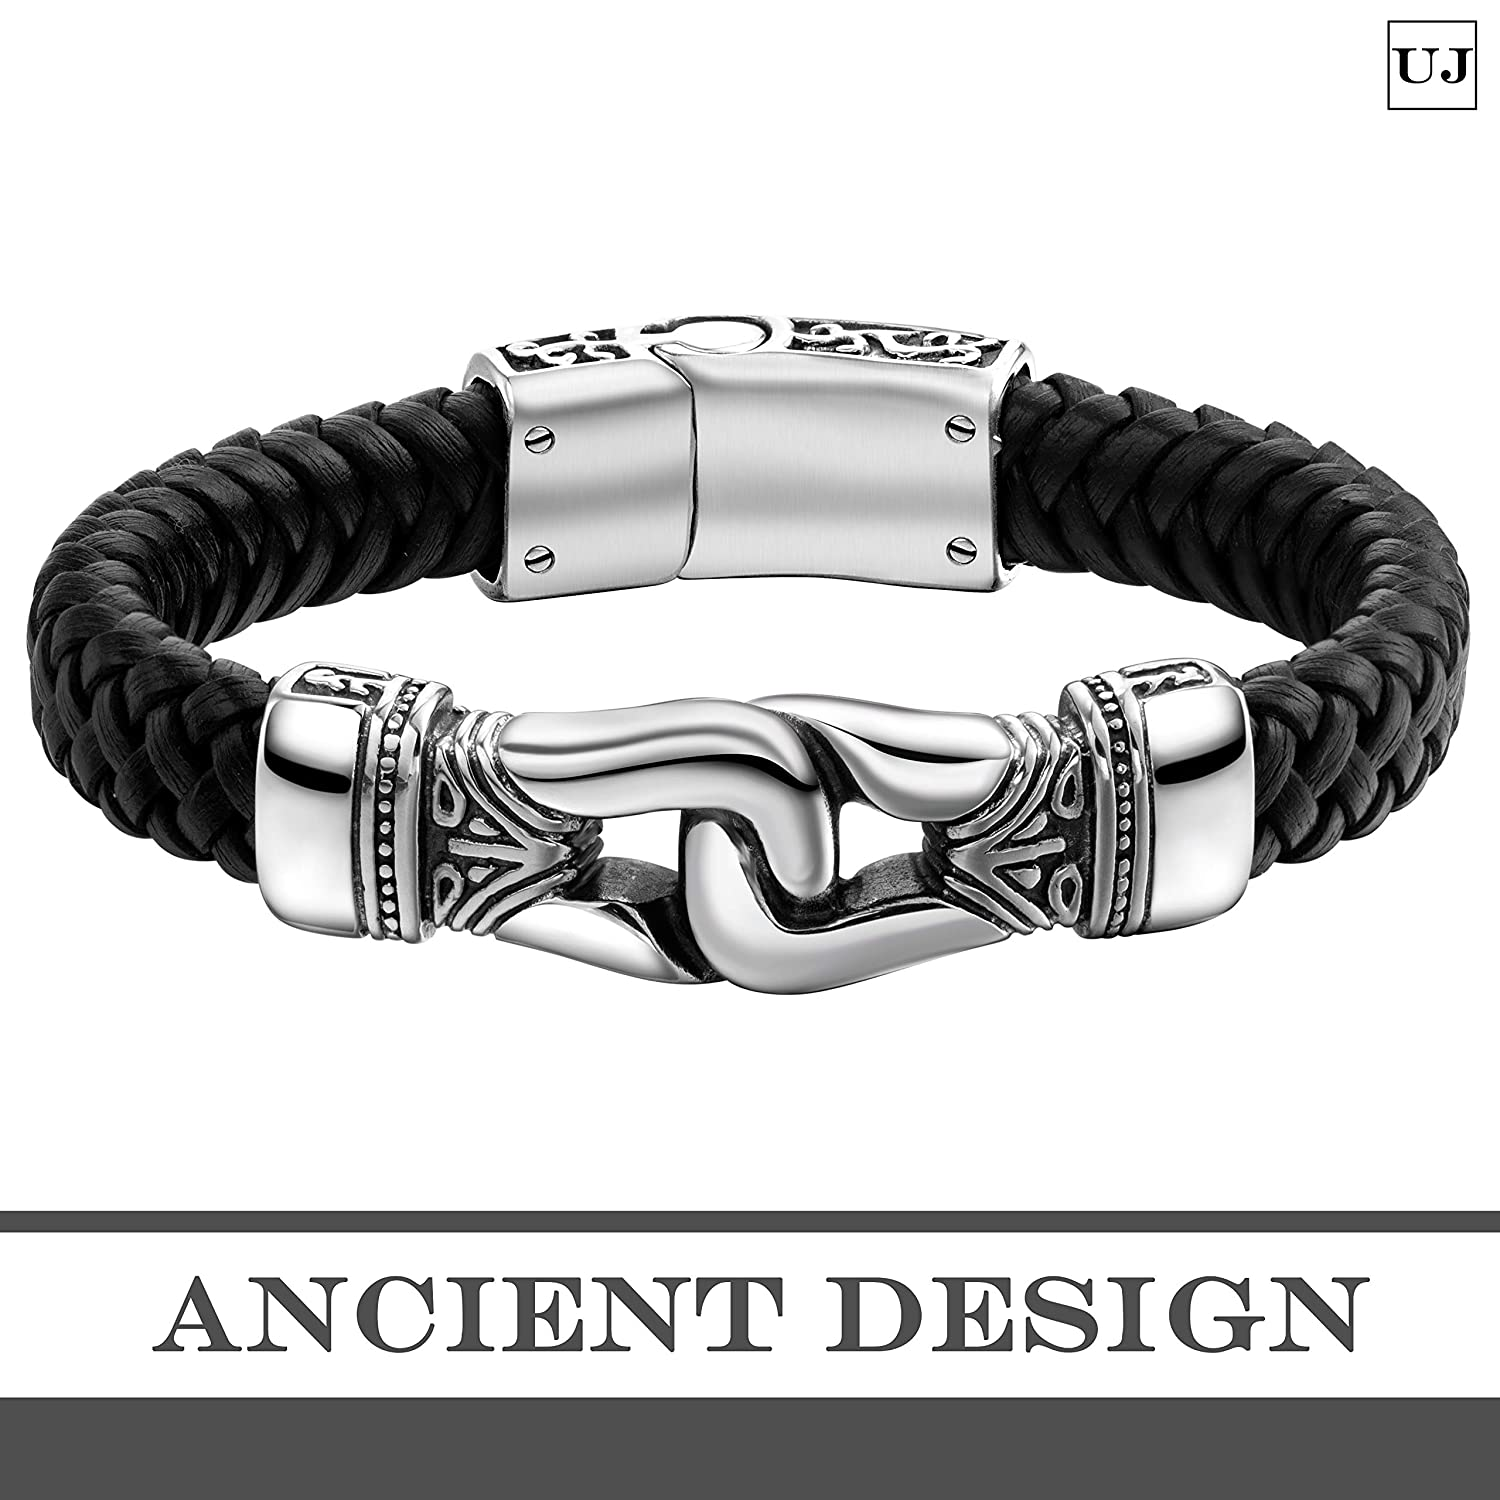 Urban Jewelry Mens Bracelet Made of Stainless Steel and Genuine Leather for Him Ancient Pattern Design in a Polished Silver Finish and Black Leather Rope Chain